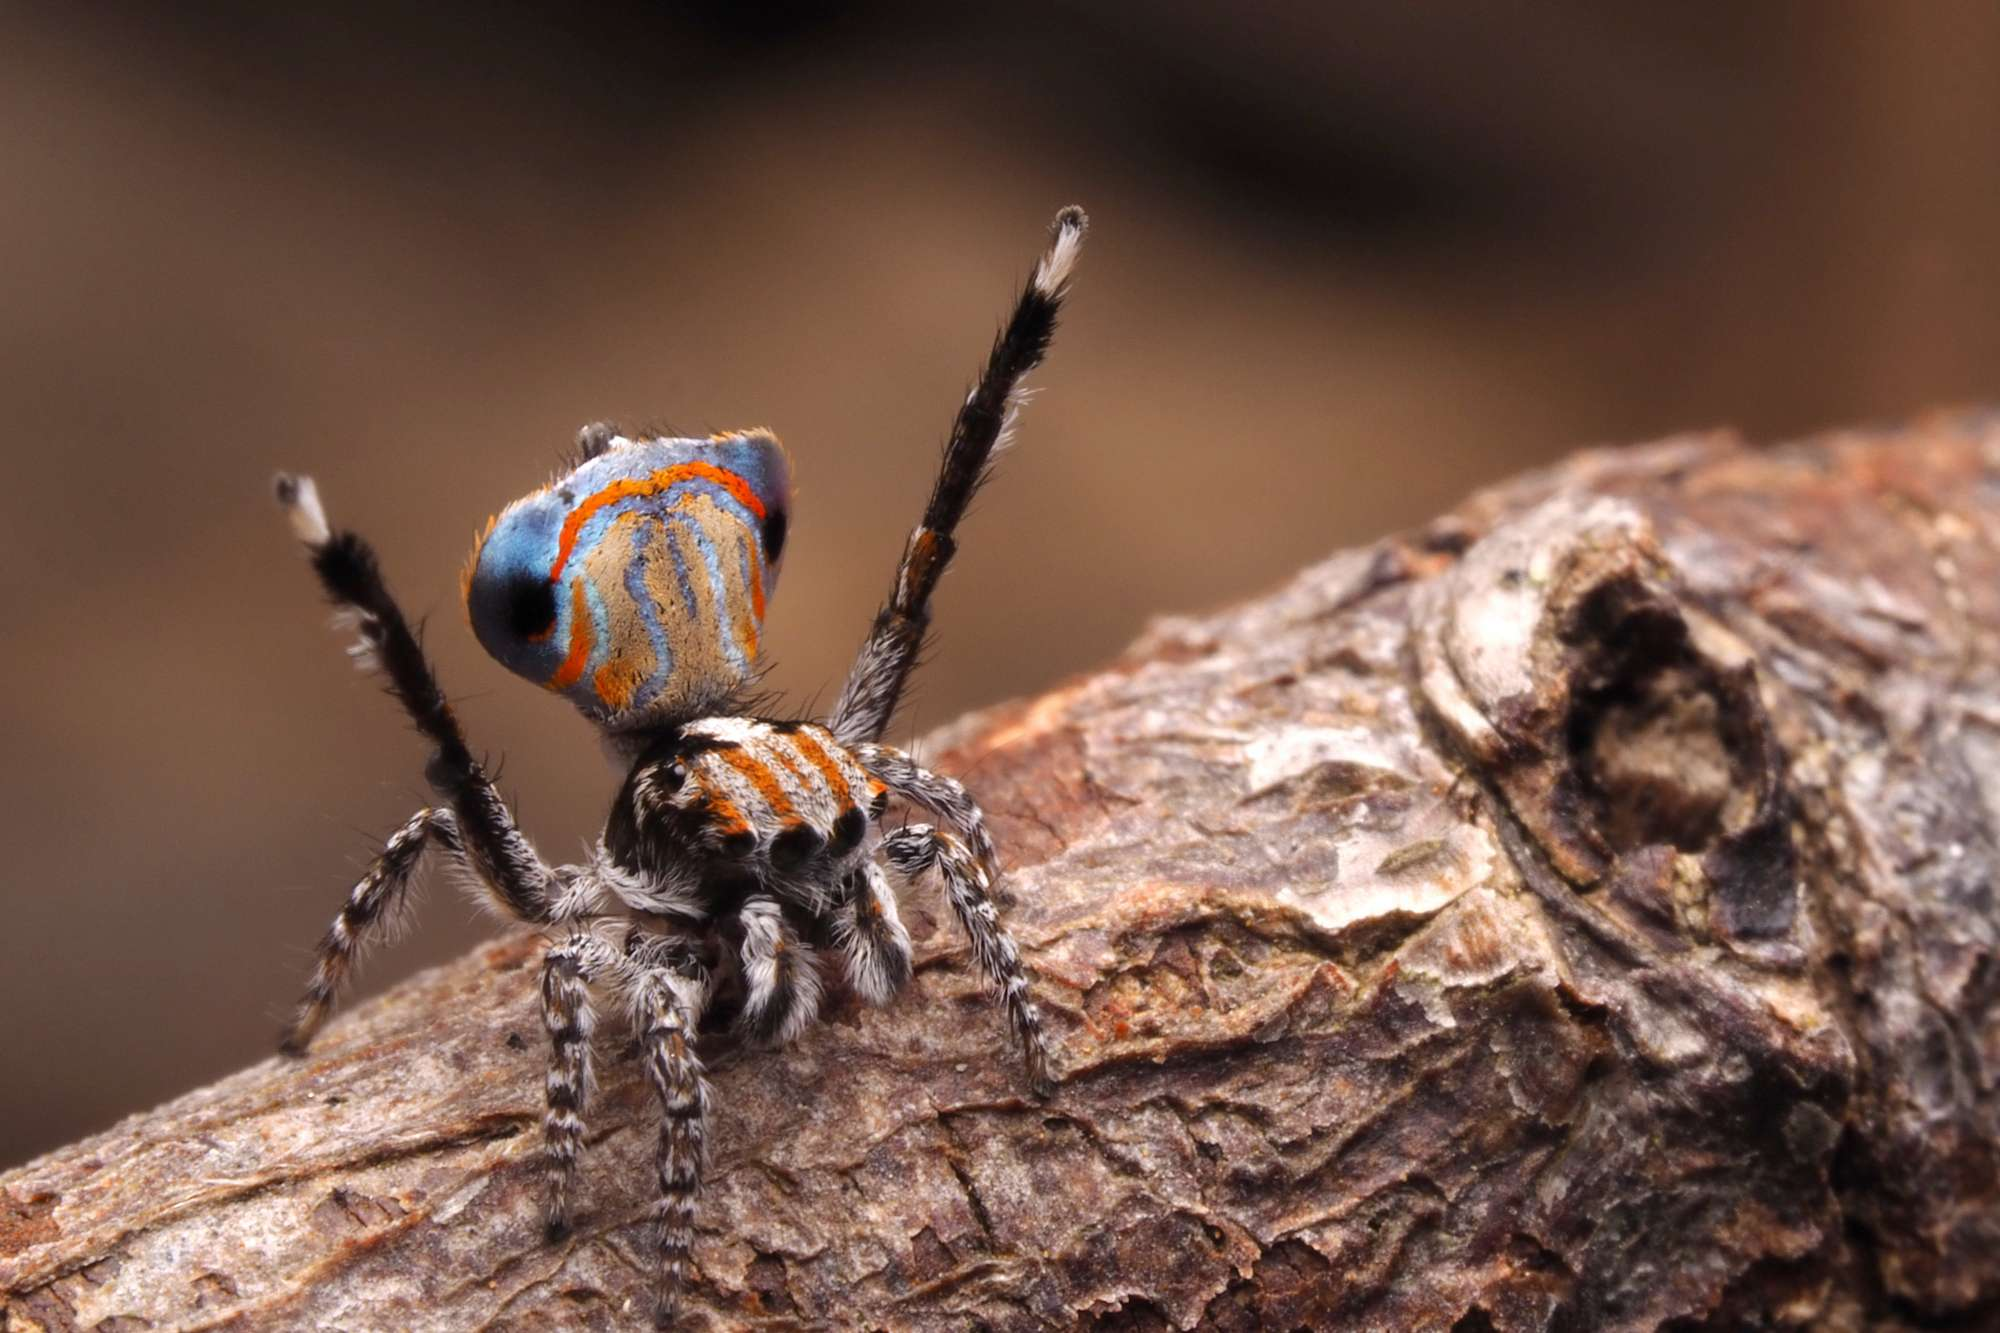 Maratus australis Look Closer Dr. Mat Blog